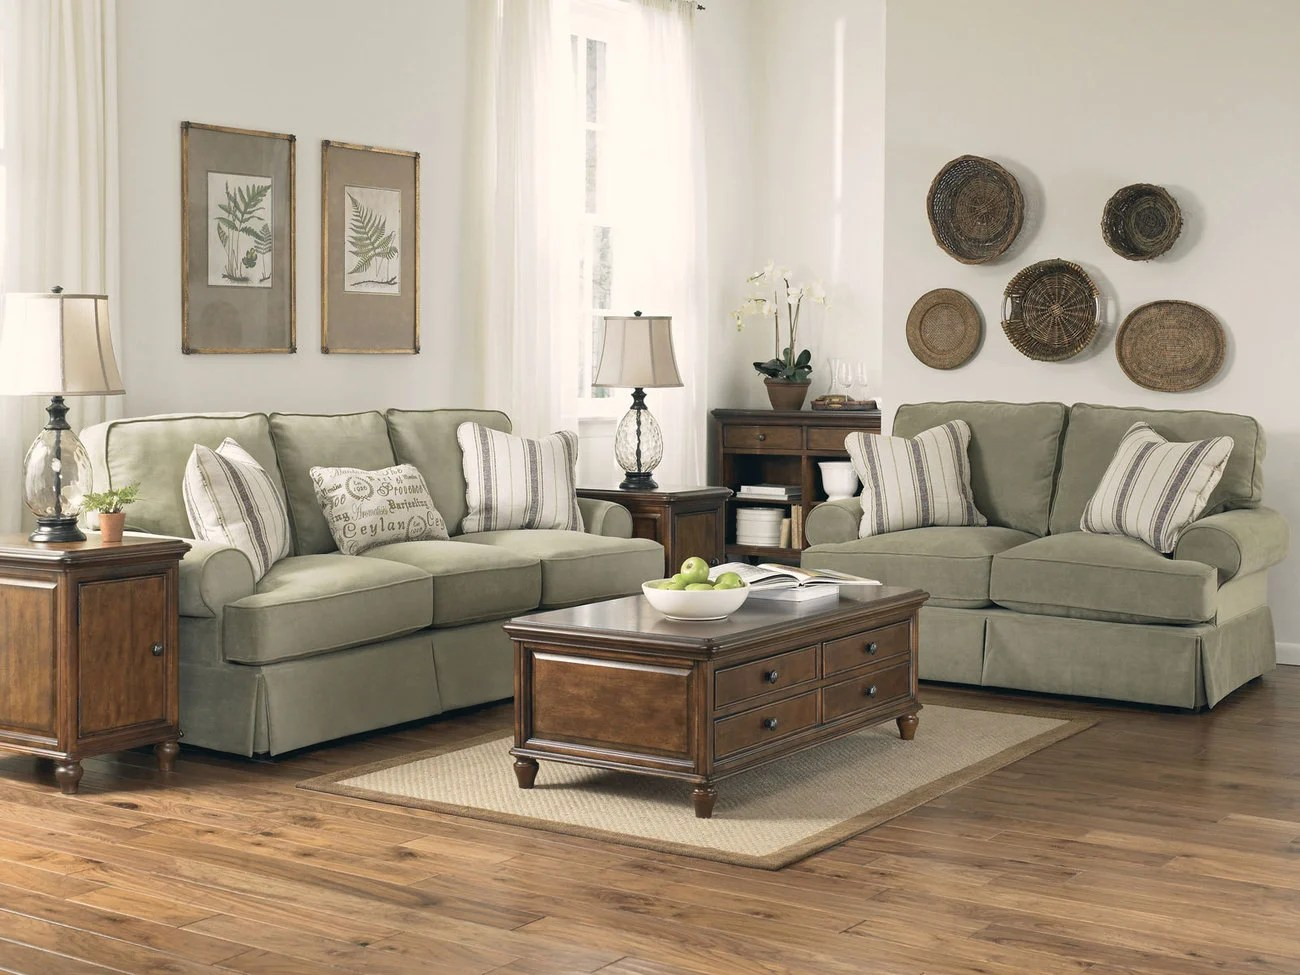 Living Room Couch 20 Great Small Couches For Your Living Room